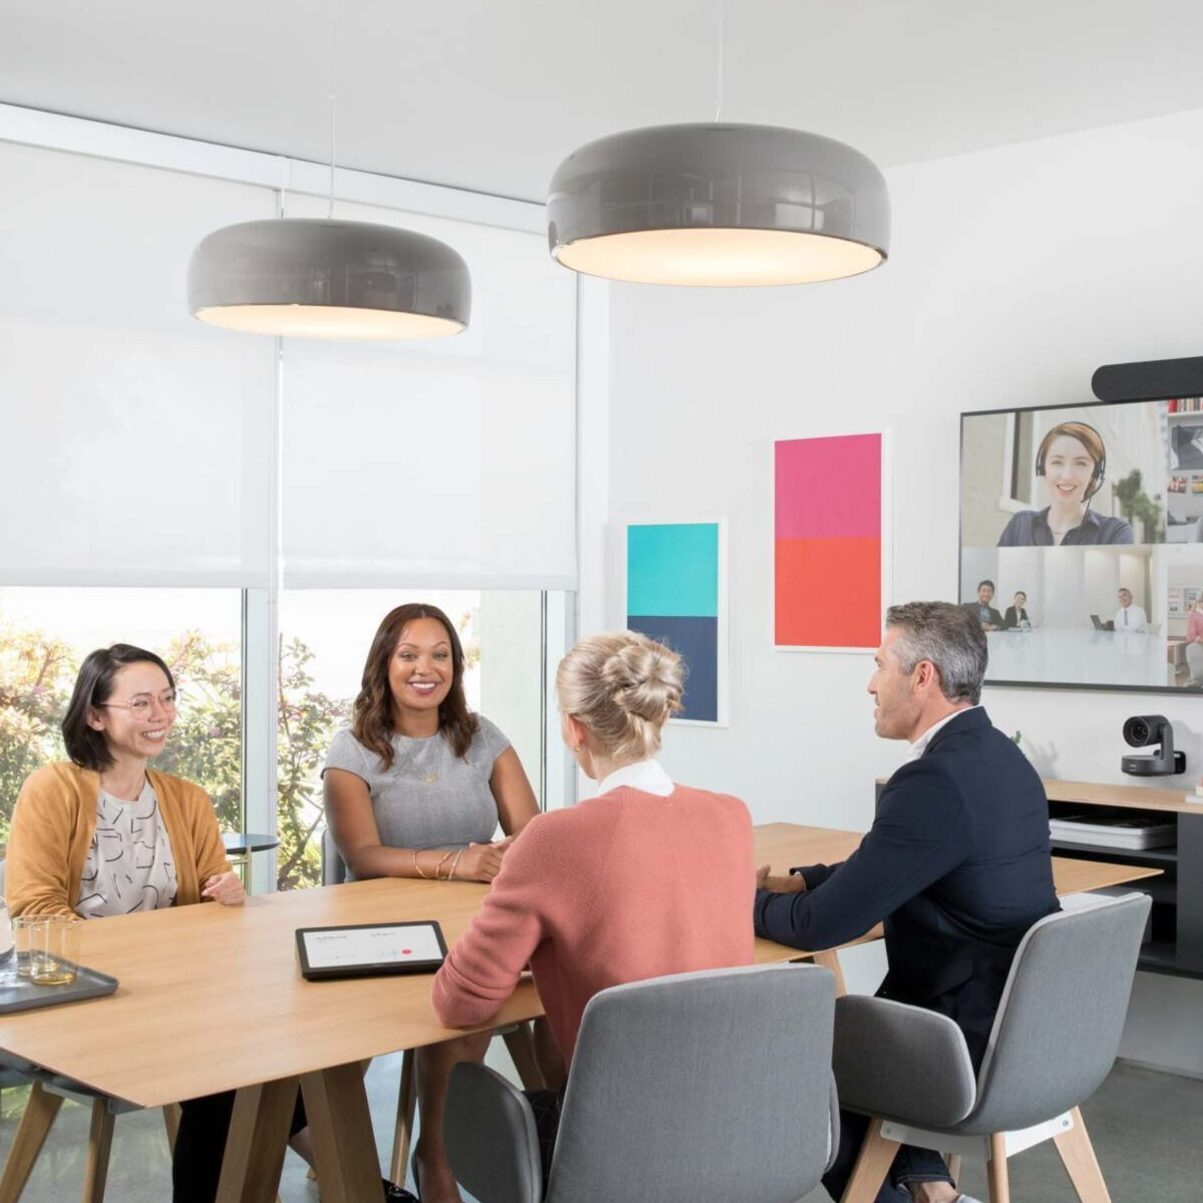 5 Workplace Trends in 2020 and beyond